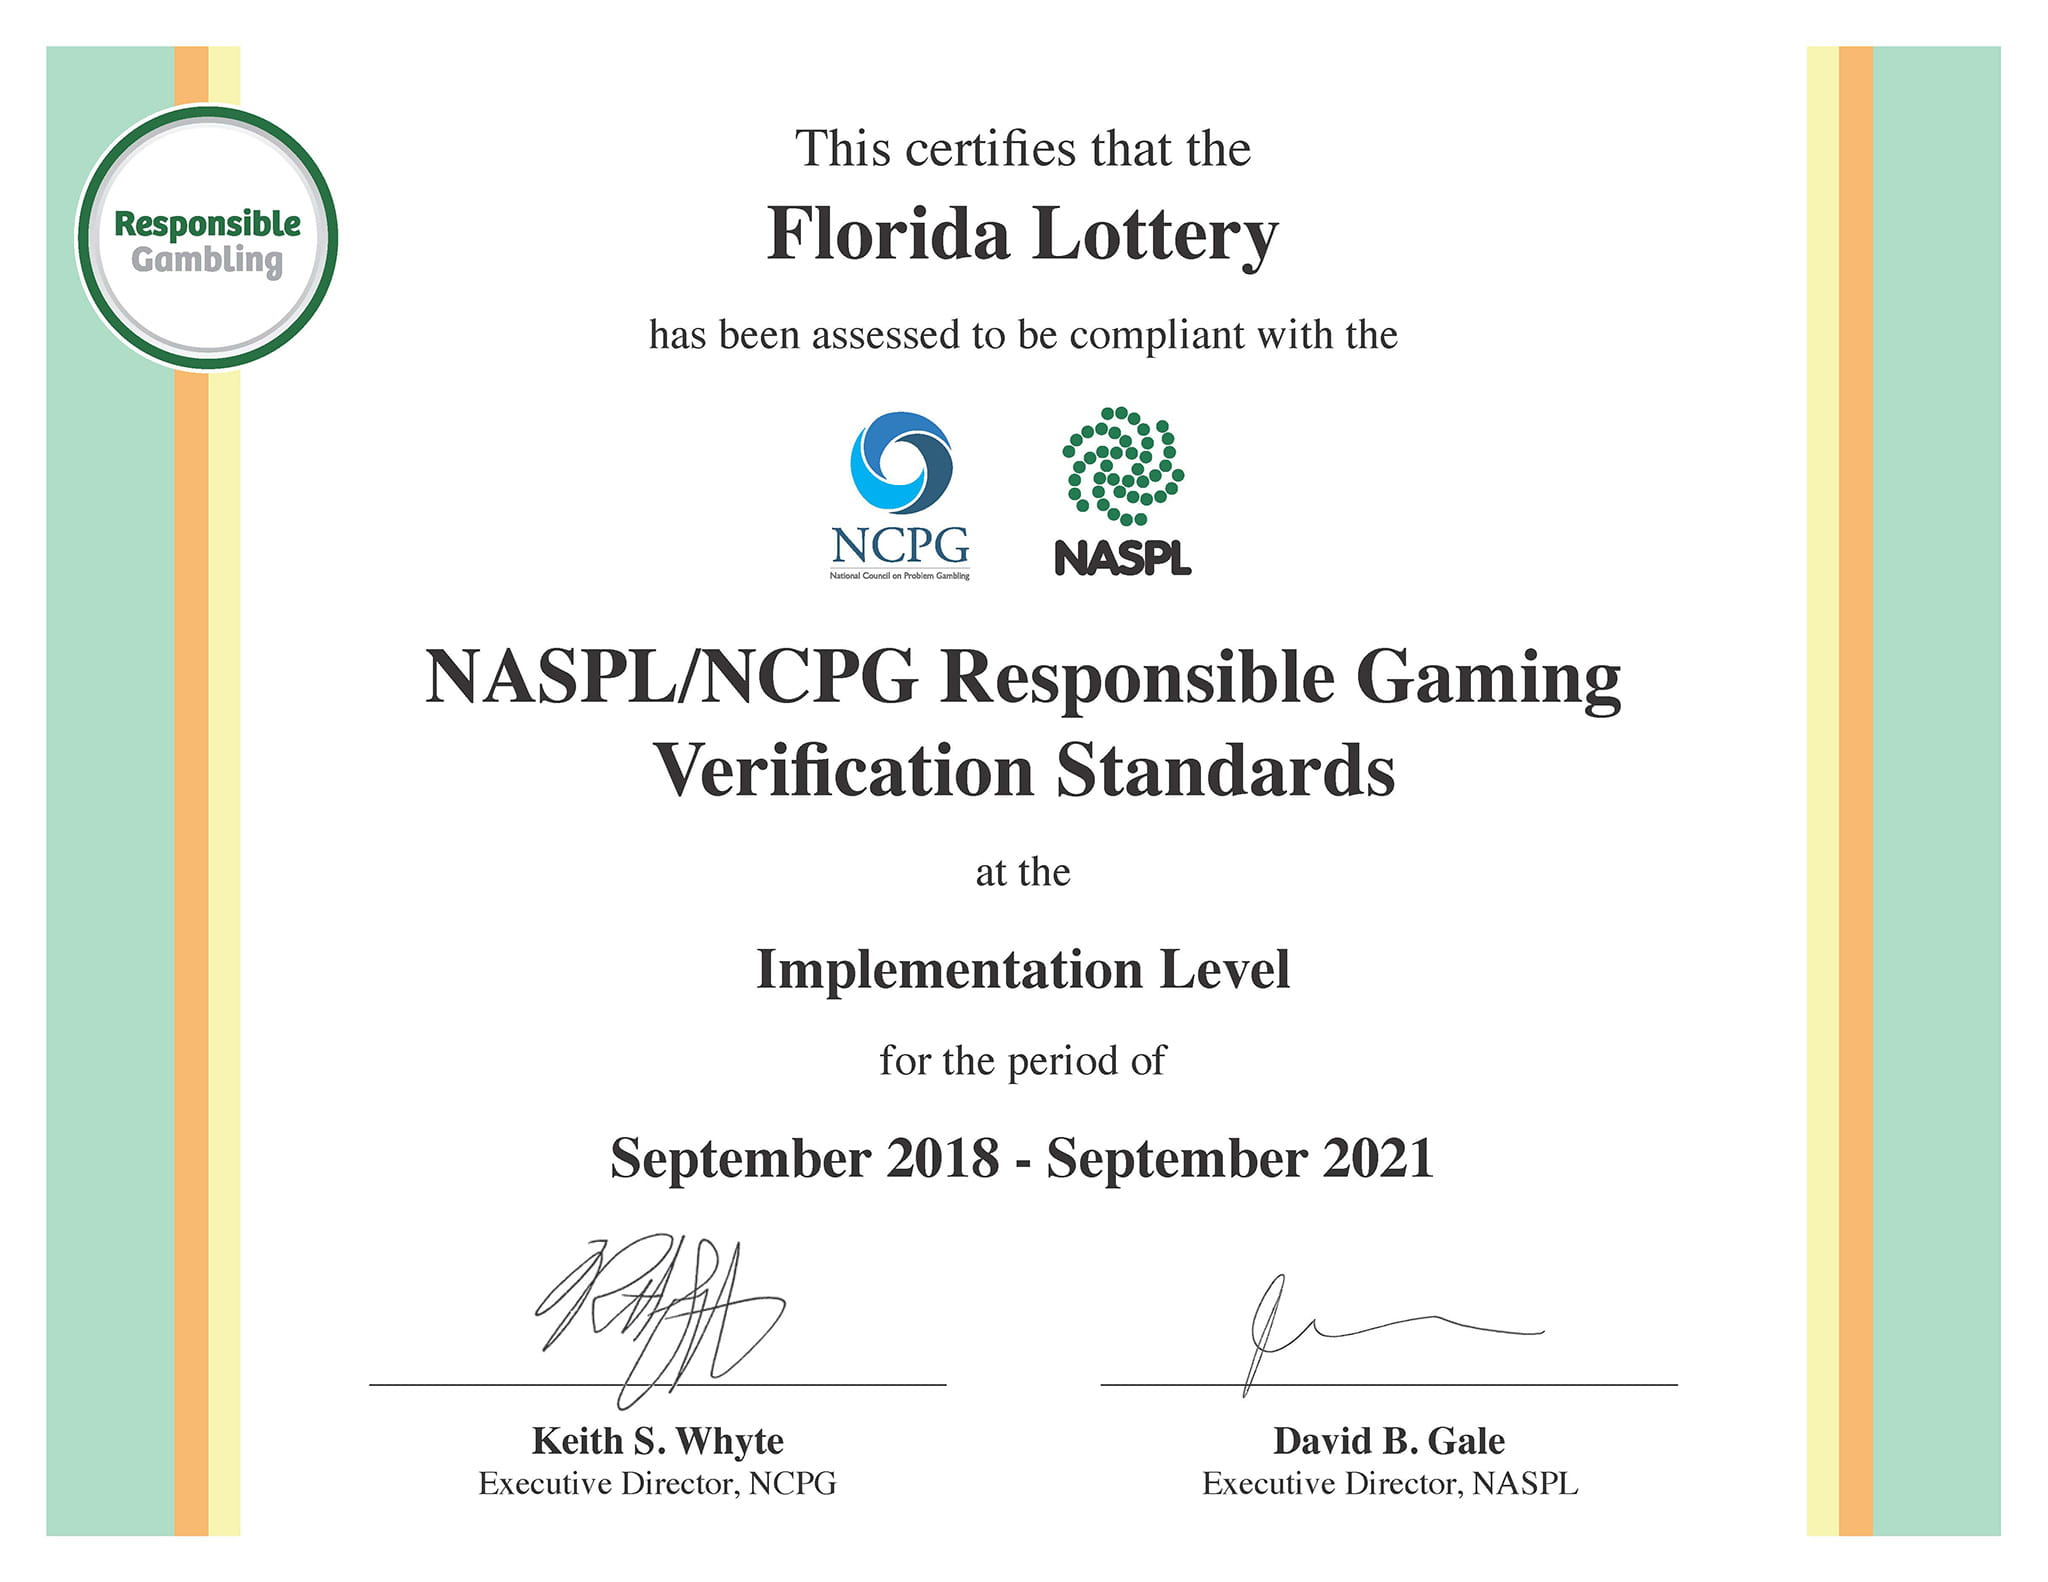 NASPL/NCPG Responsible Gaming Verification Standards Certificate